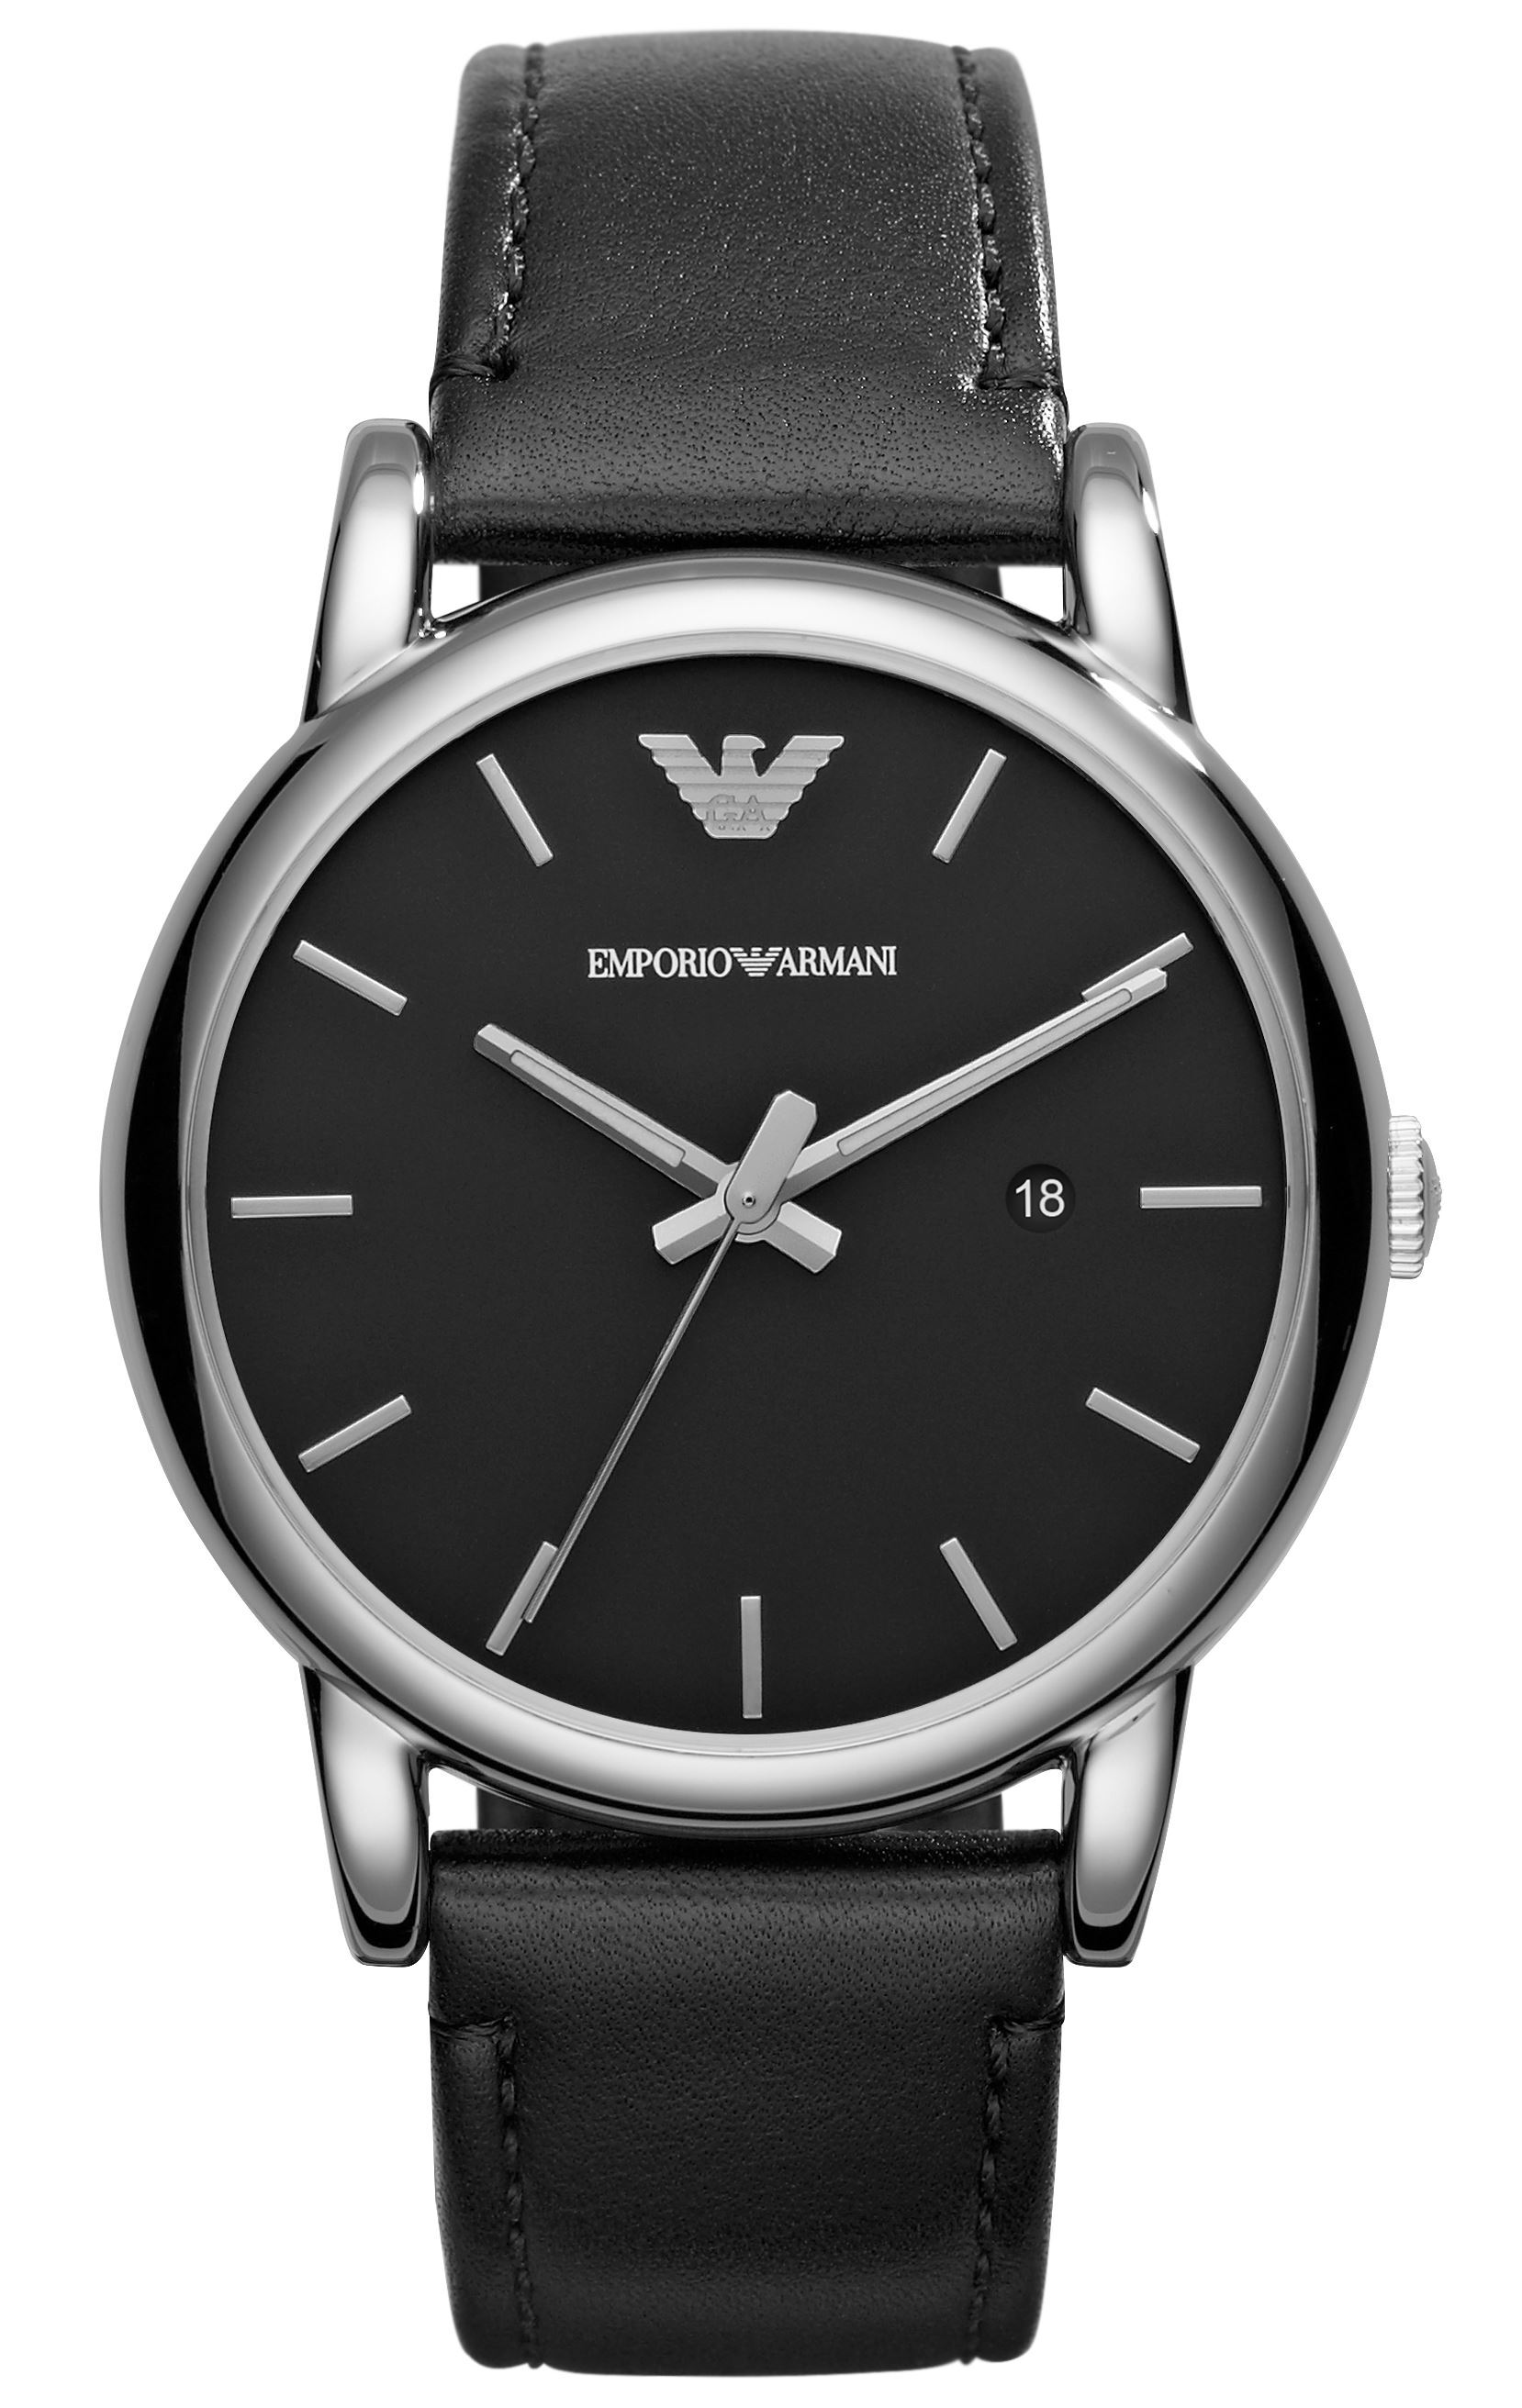 Emporio Armani Dress Herreklokke AR1692 Sort/Lær Ø41 mm - Emporio Armani